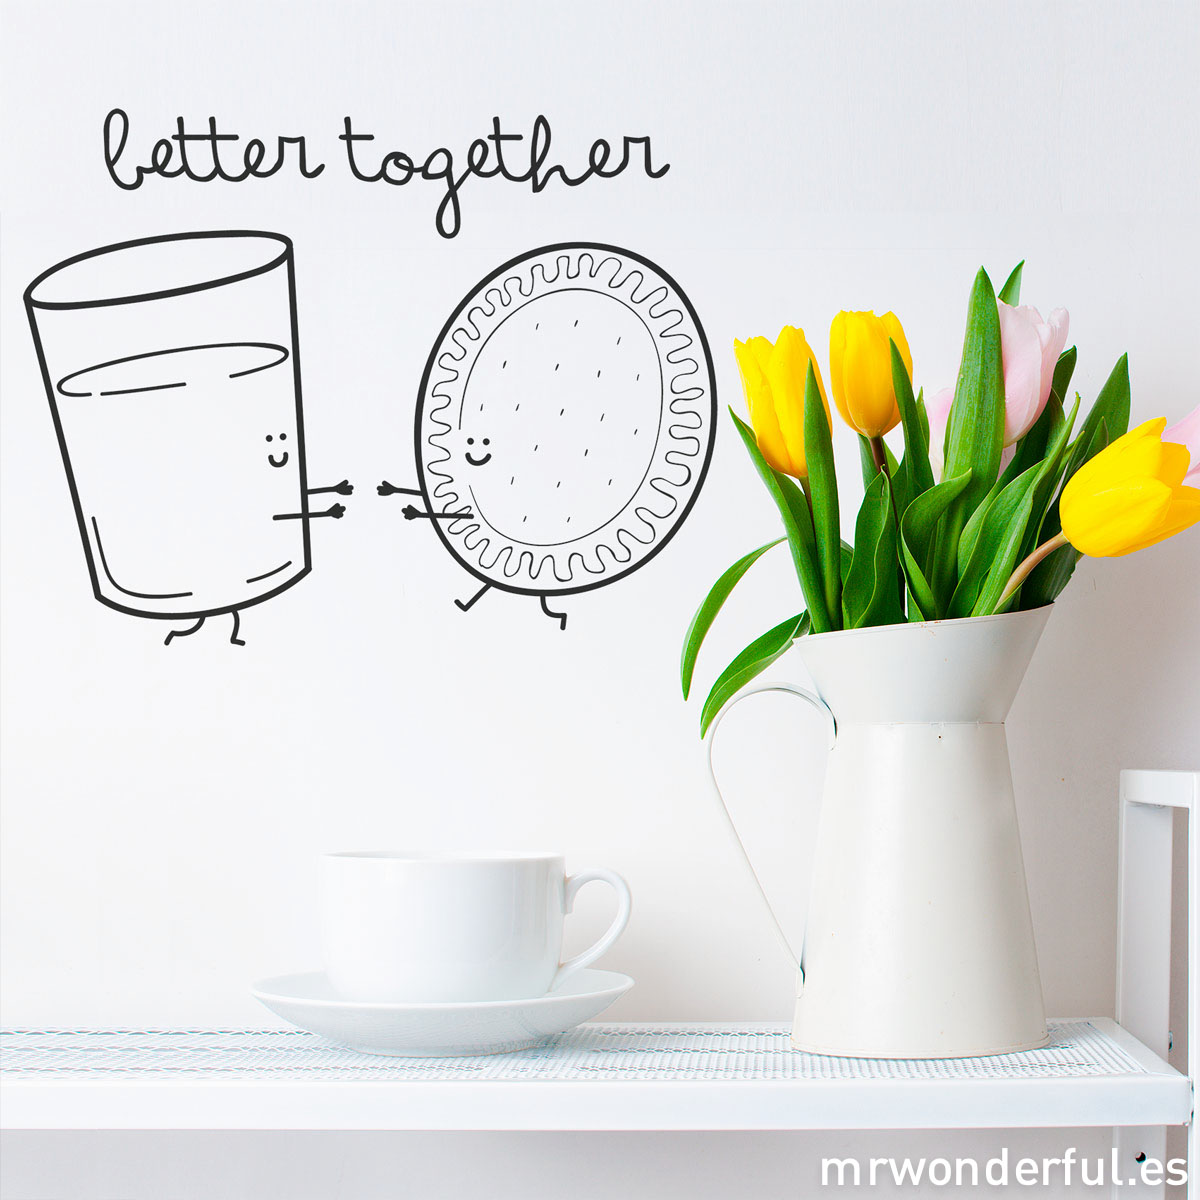 mrwonderful_vinilos_better-together_1200